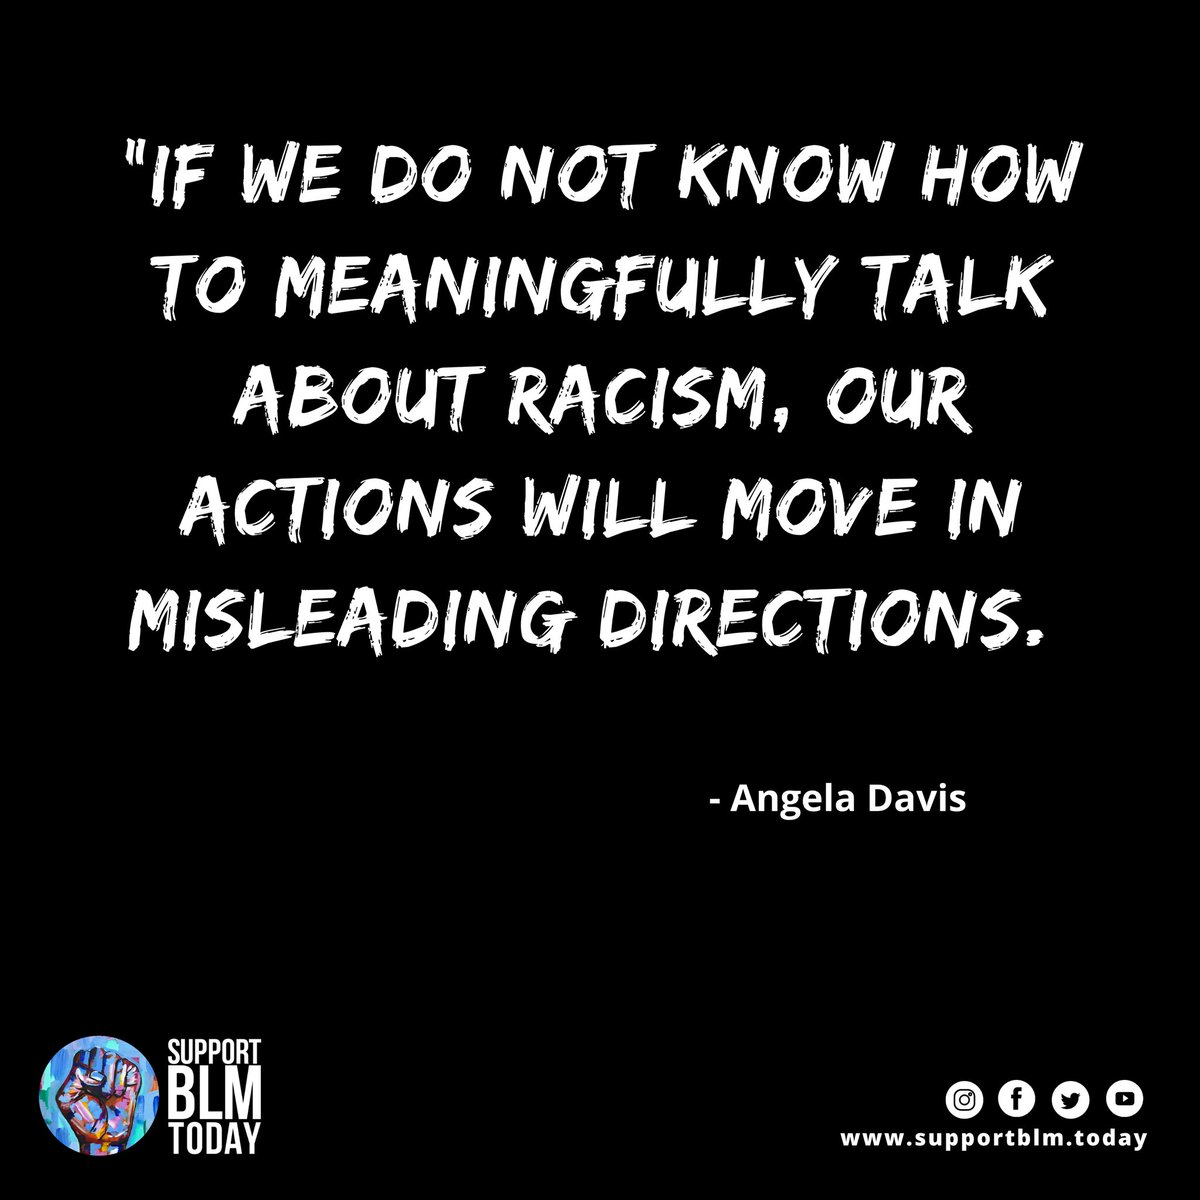 If we do not know how to meaningfully talk about racism, our actions will move in misleading directions    #blacklivesmatter #blmquotes #blm #blm2021 #equality #racism #solidarity #blacklives #mlk #blmmovement #nojusticenopeace #blacklivesmatterplaza